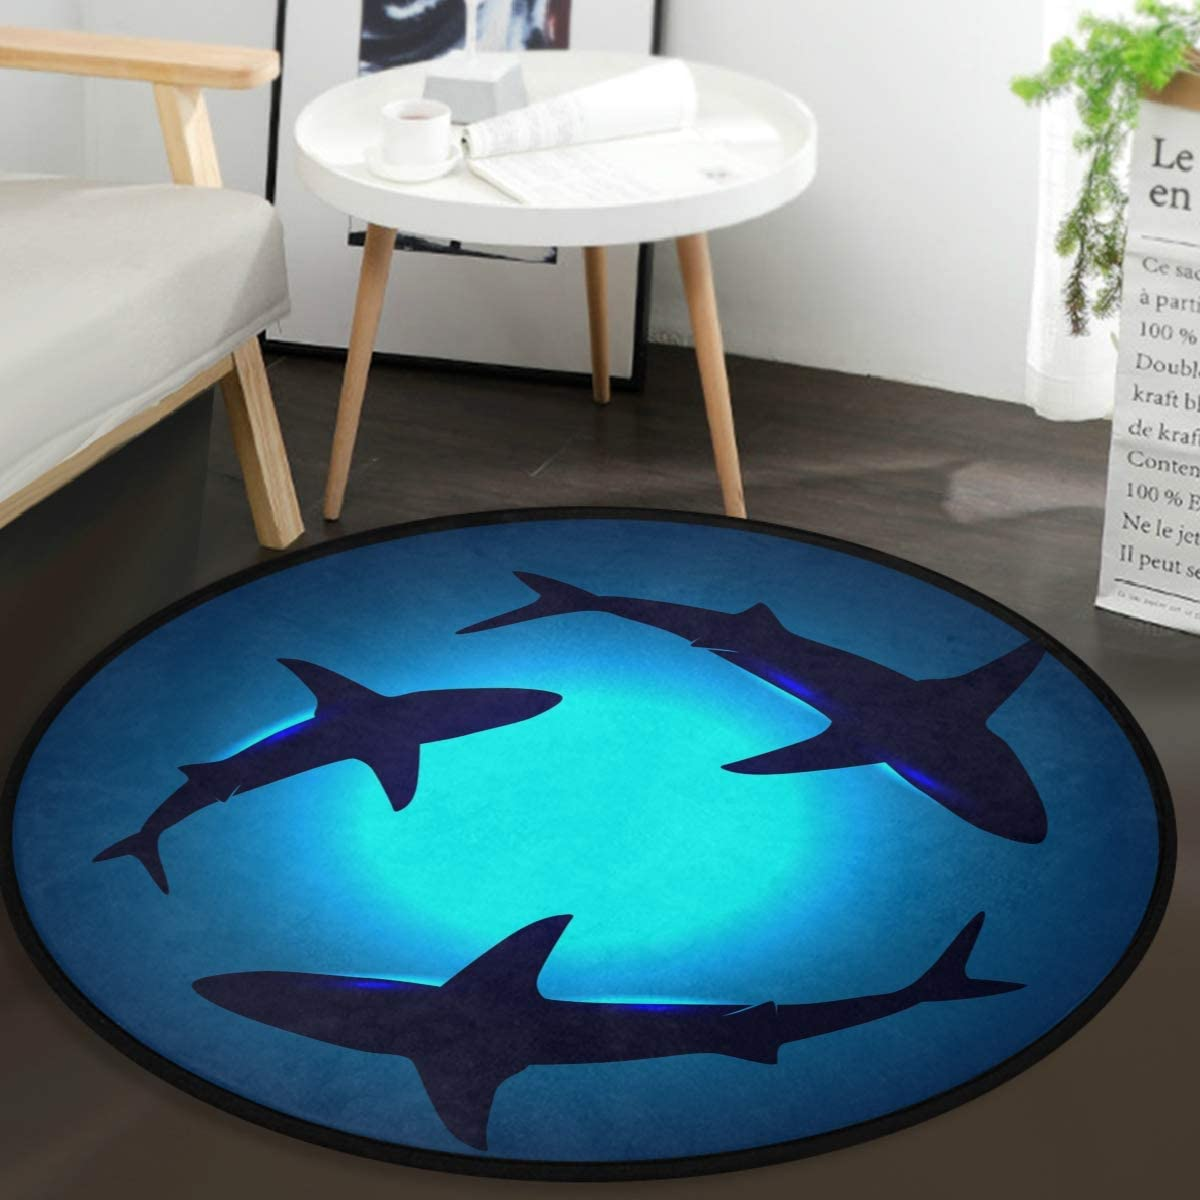 Vdsrup Cute Animal Sharks Doormat Shark Blue Ocean Round Floor Mat Non Slip Absorbent Carpet Yoga Rug for Entryway Bedroom Living Room Sofa Home Decor